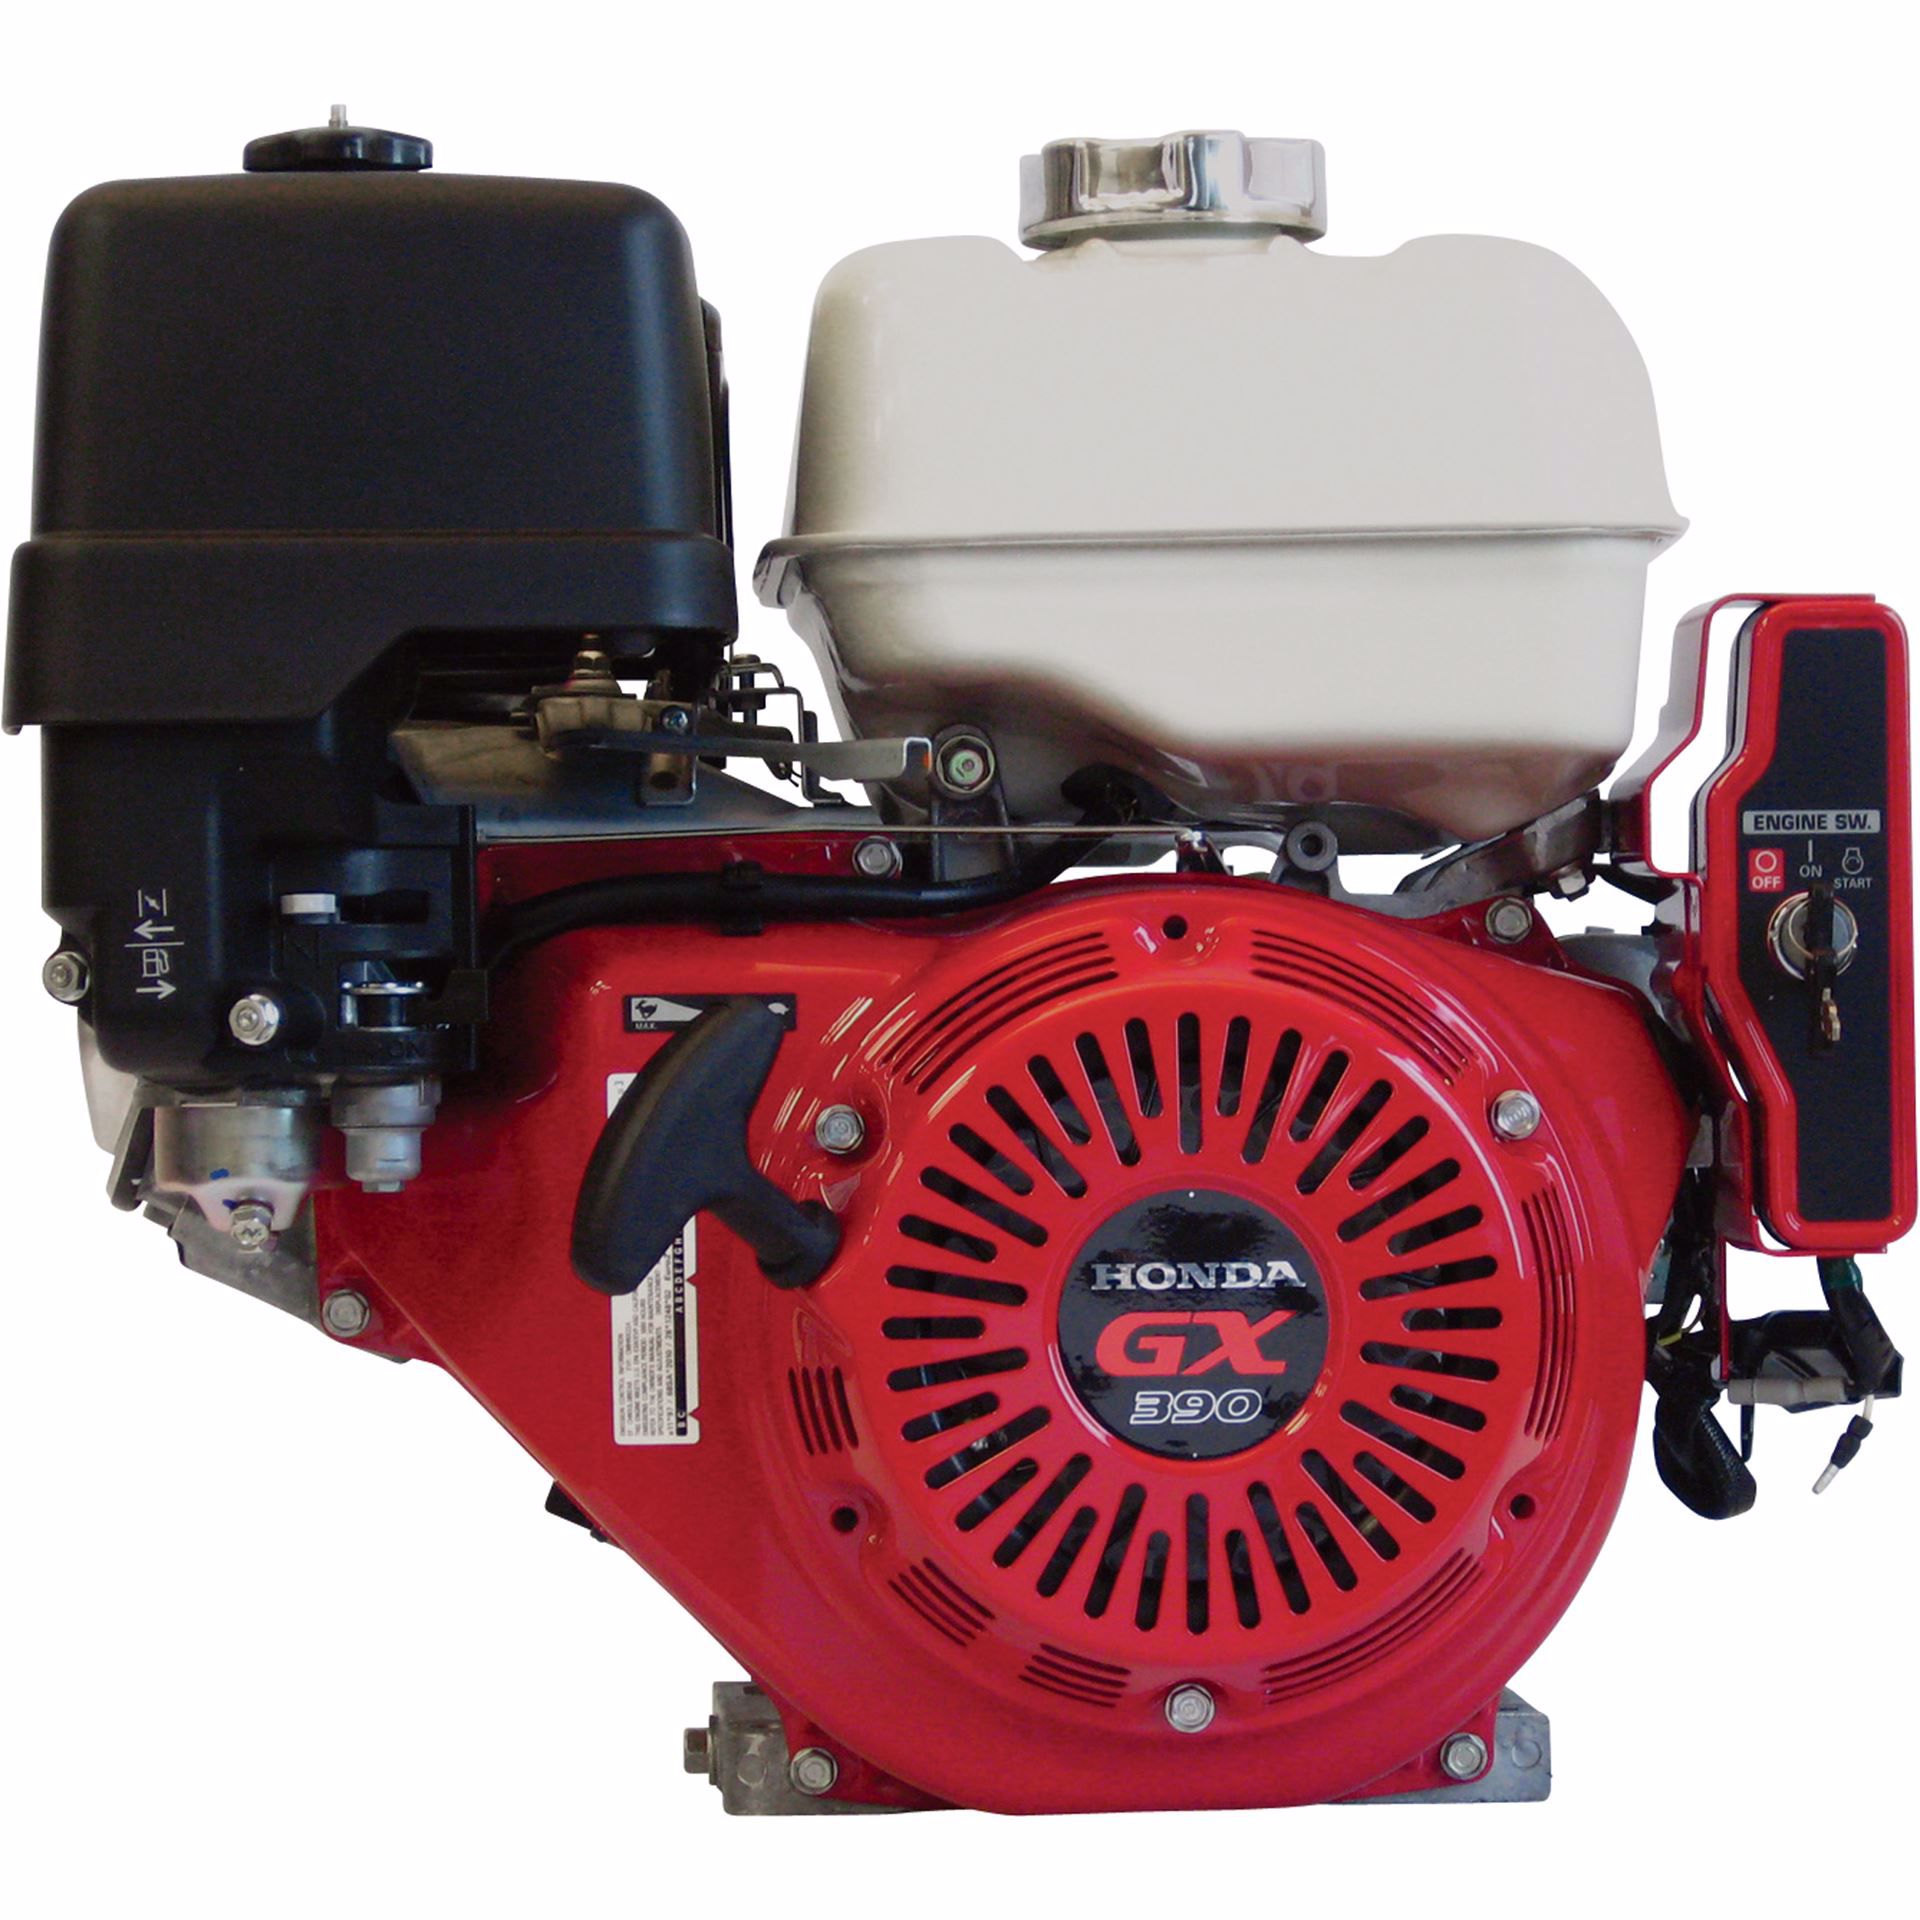 Honda Lawn Mower Motors Gx390 Qae2  Do